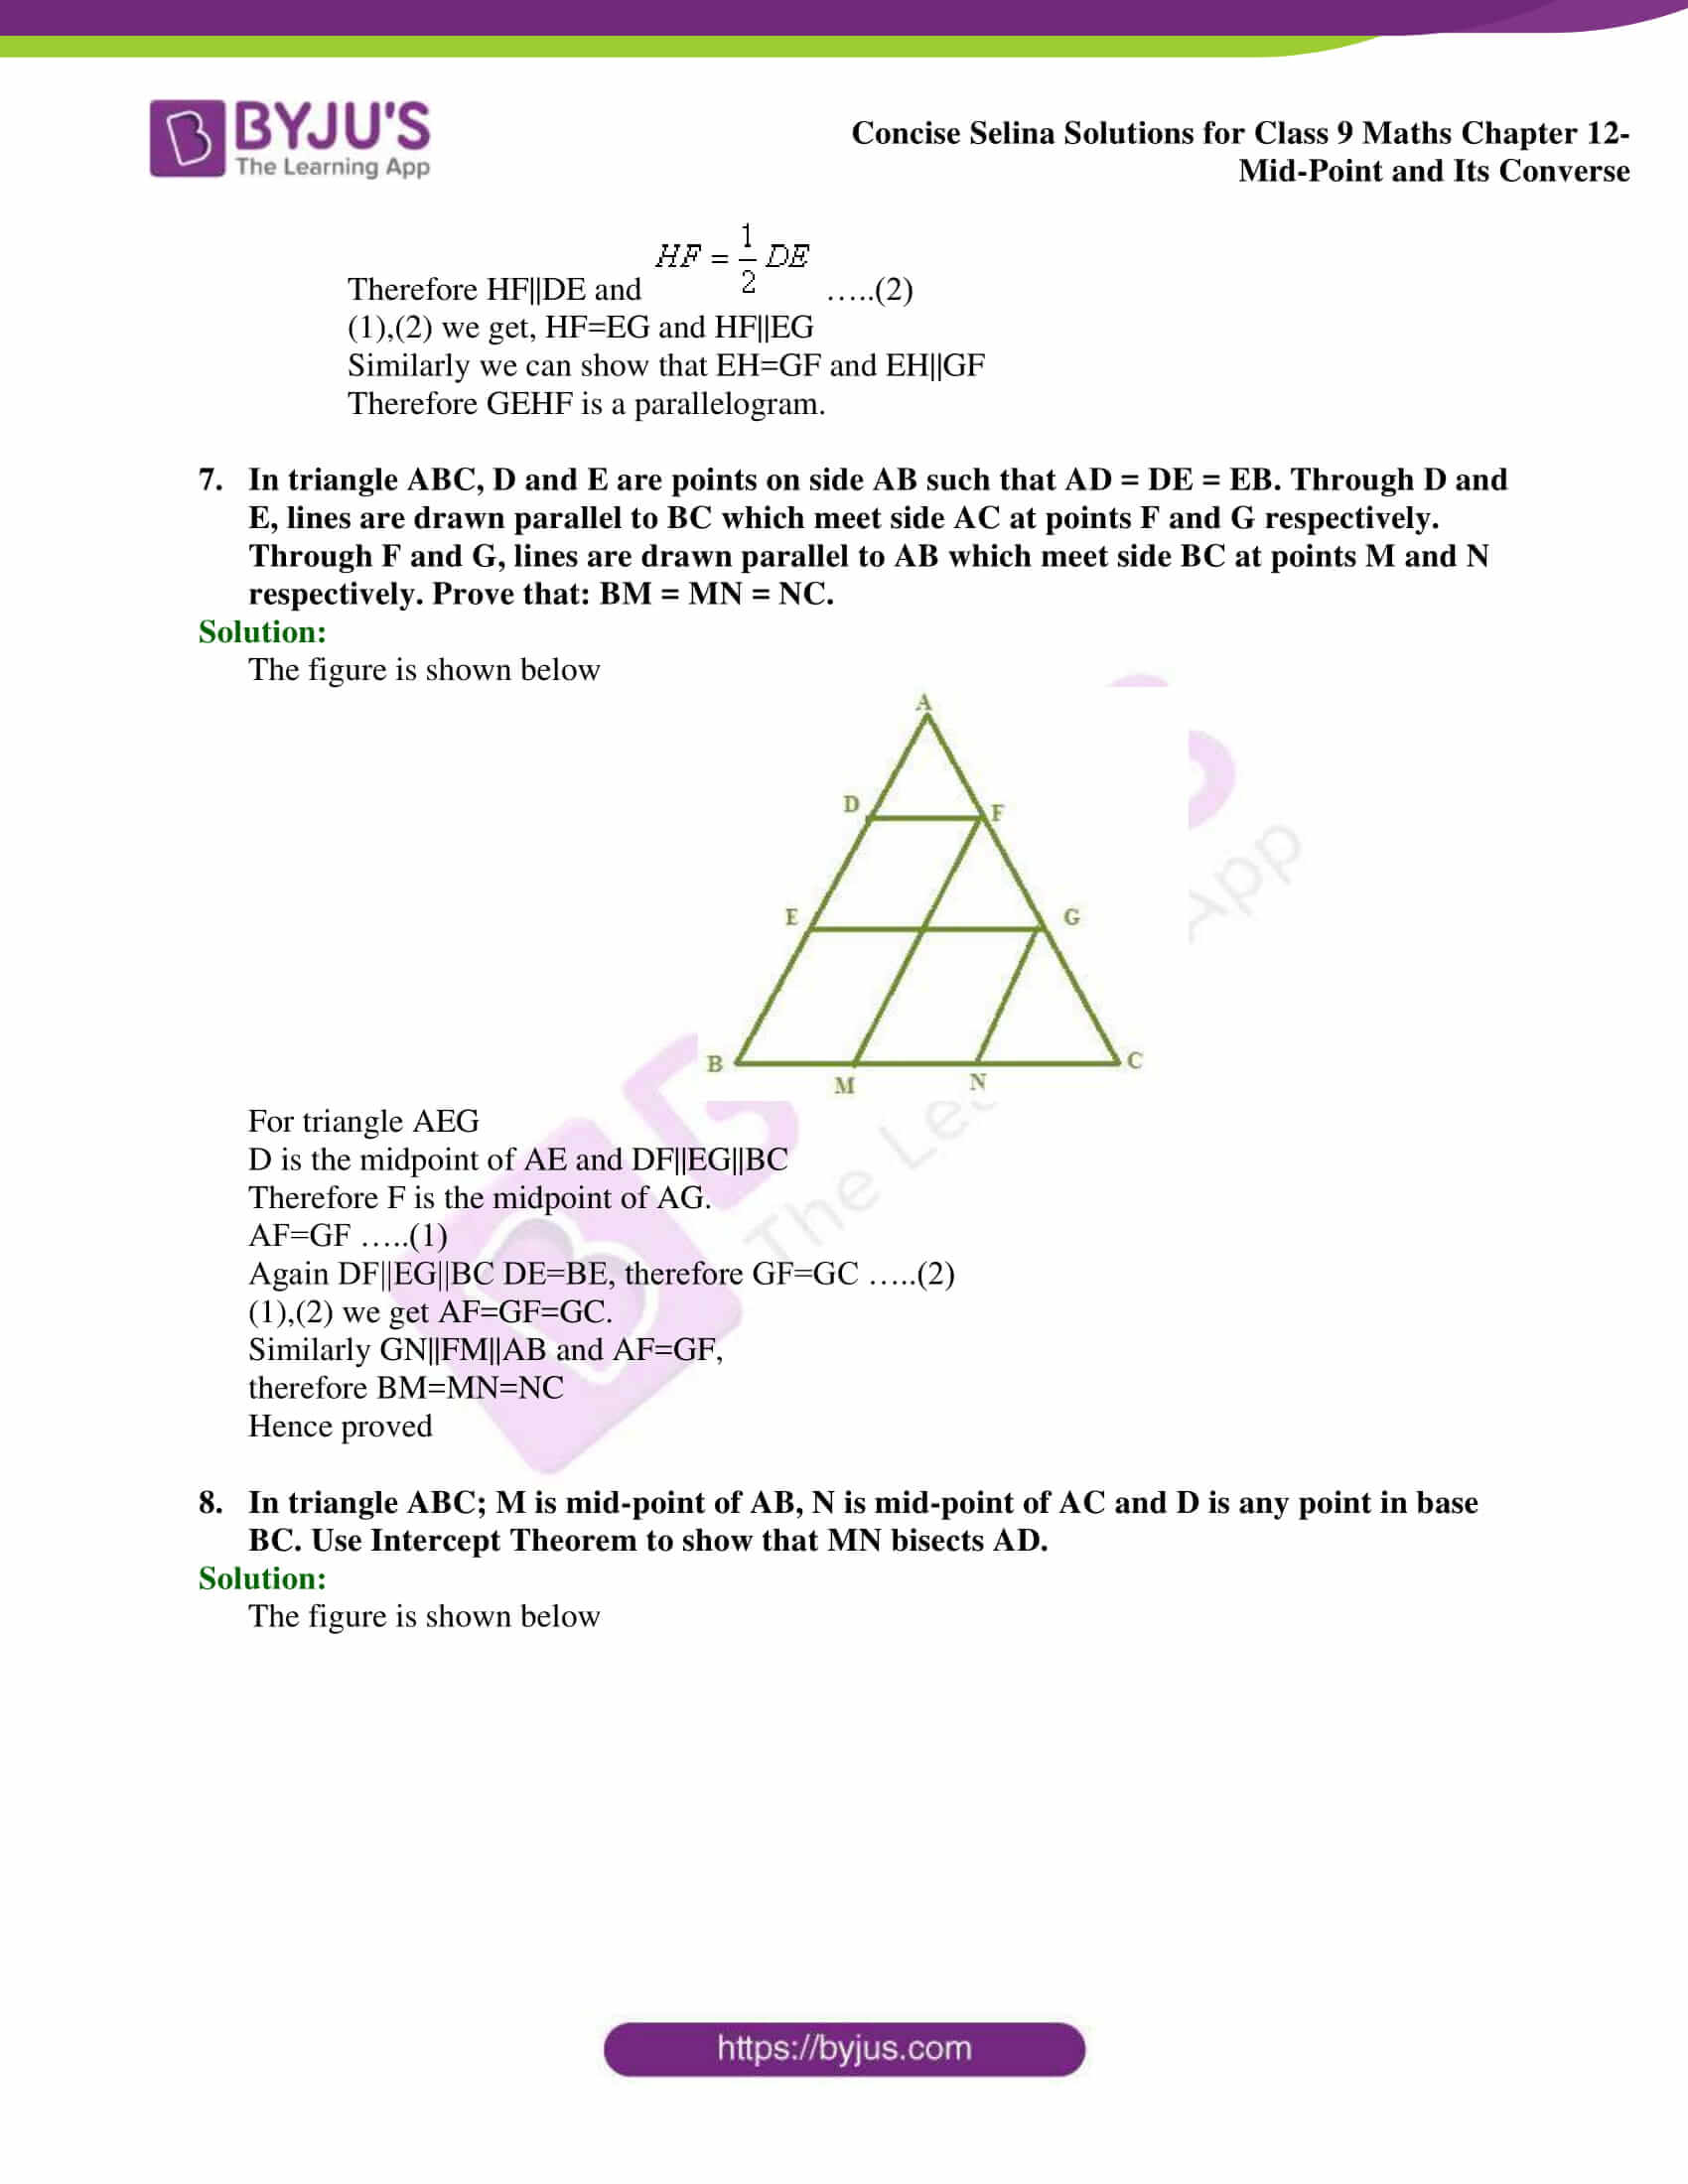 selina Solutions for Class 9 Maths Chapter 12 part 17